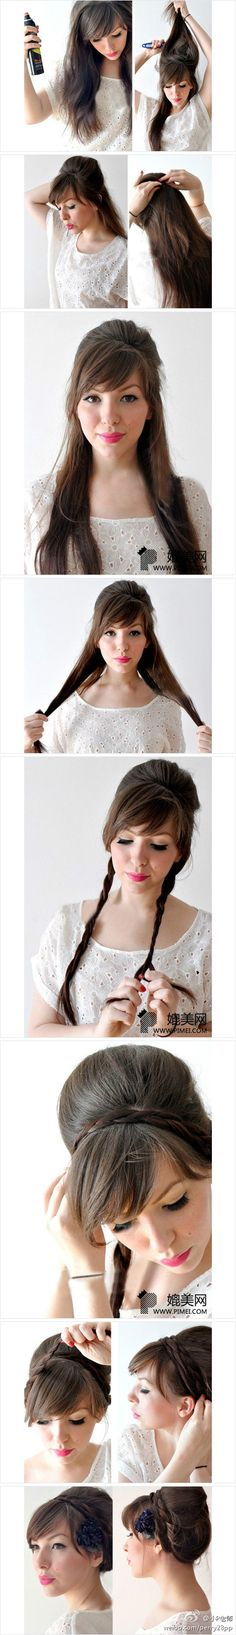 I wish I had the hair for this!